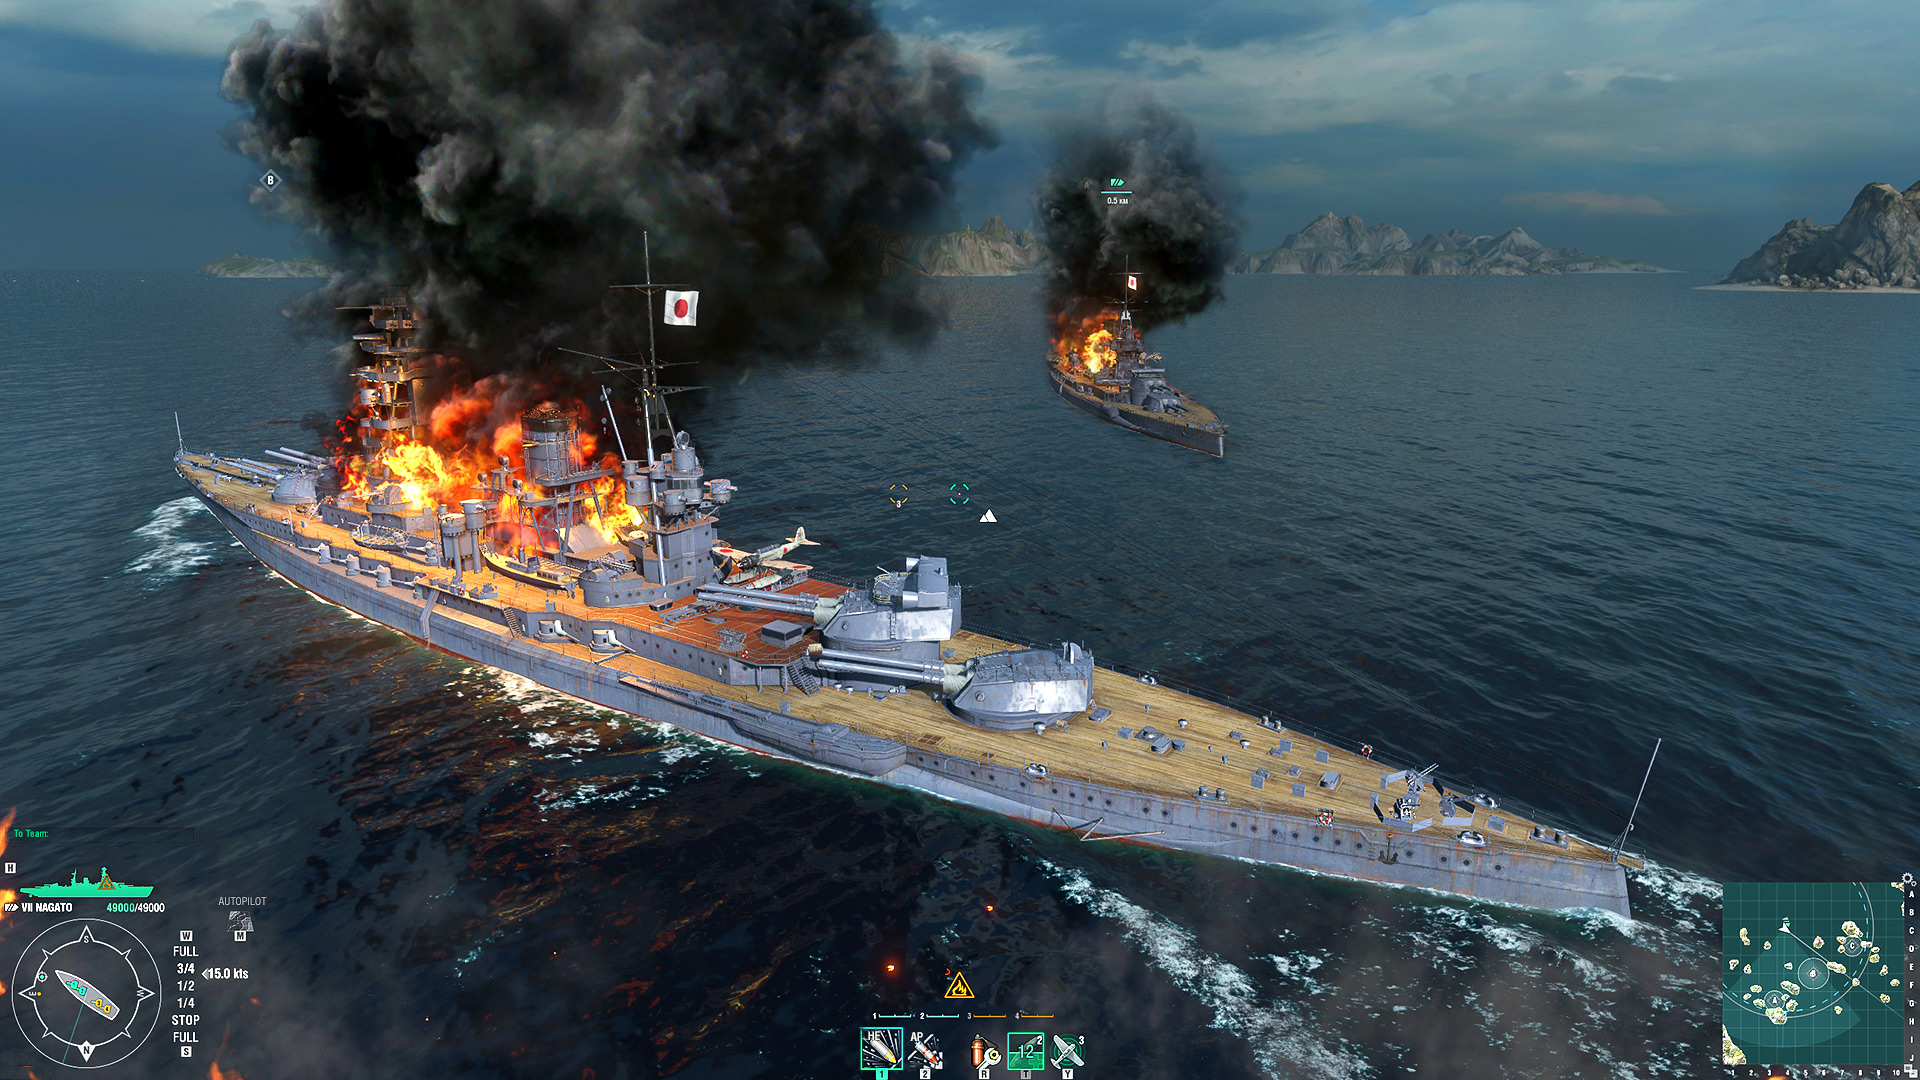 World of warships download windows 10 | How to Download